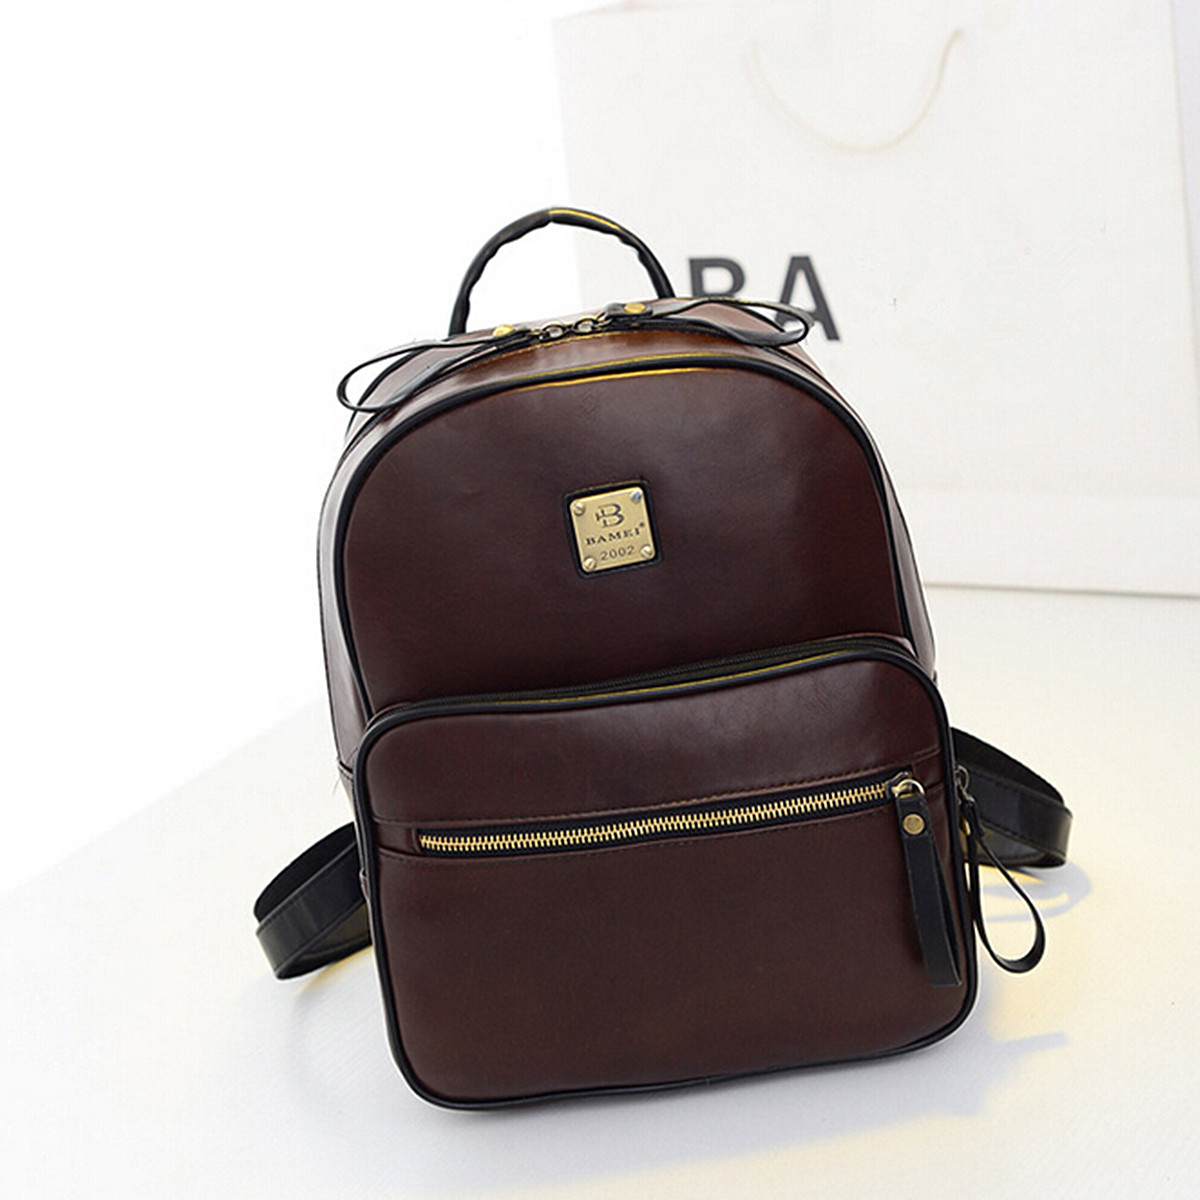 NEW Fashion Women Leather Backpack School Bags Satchel ...